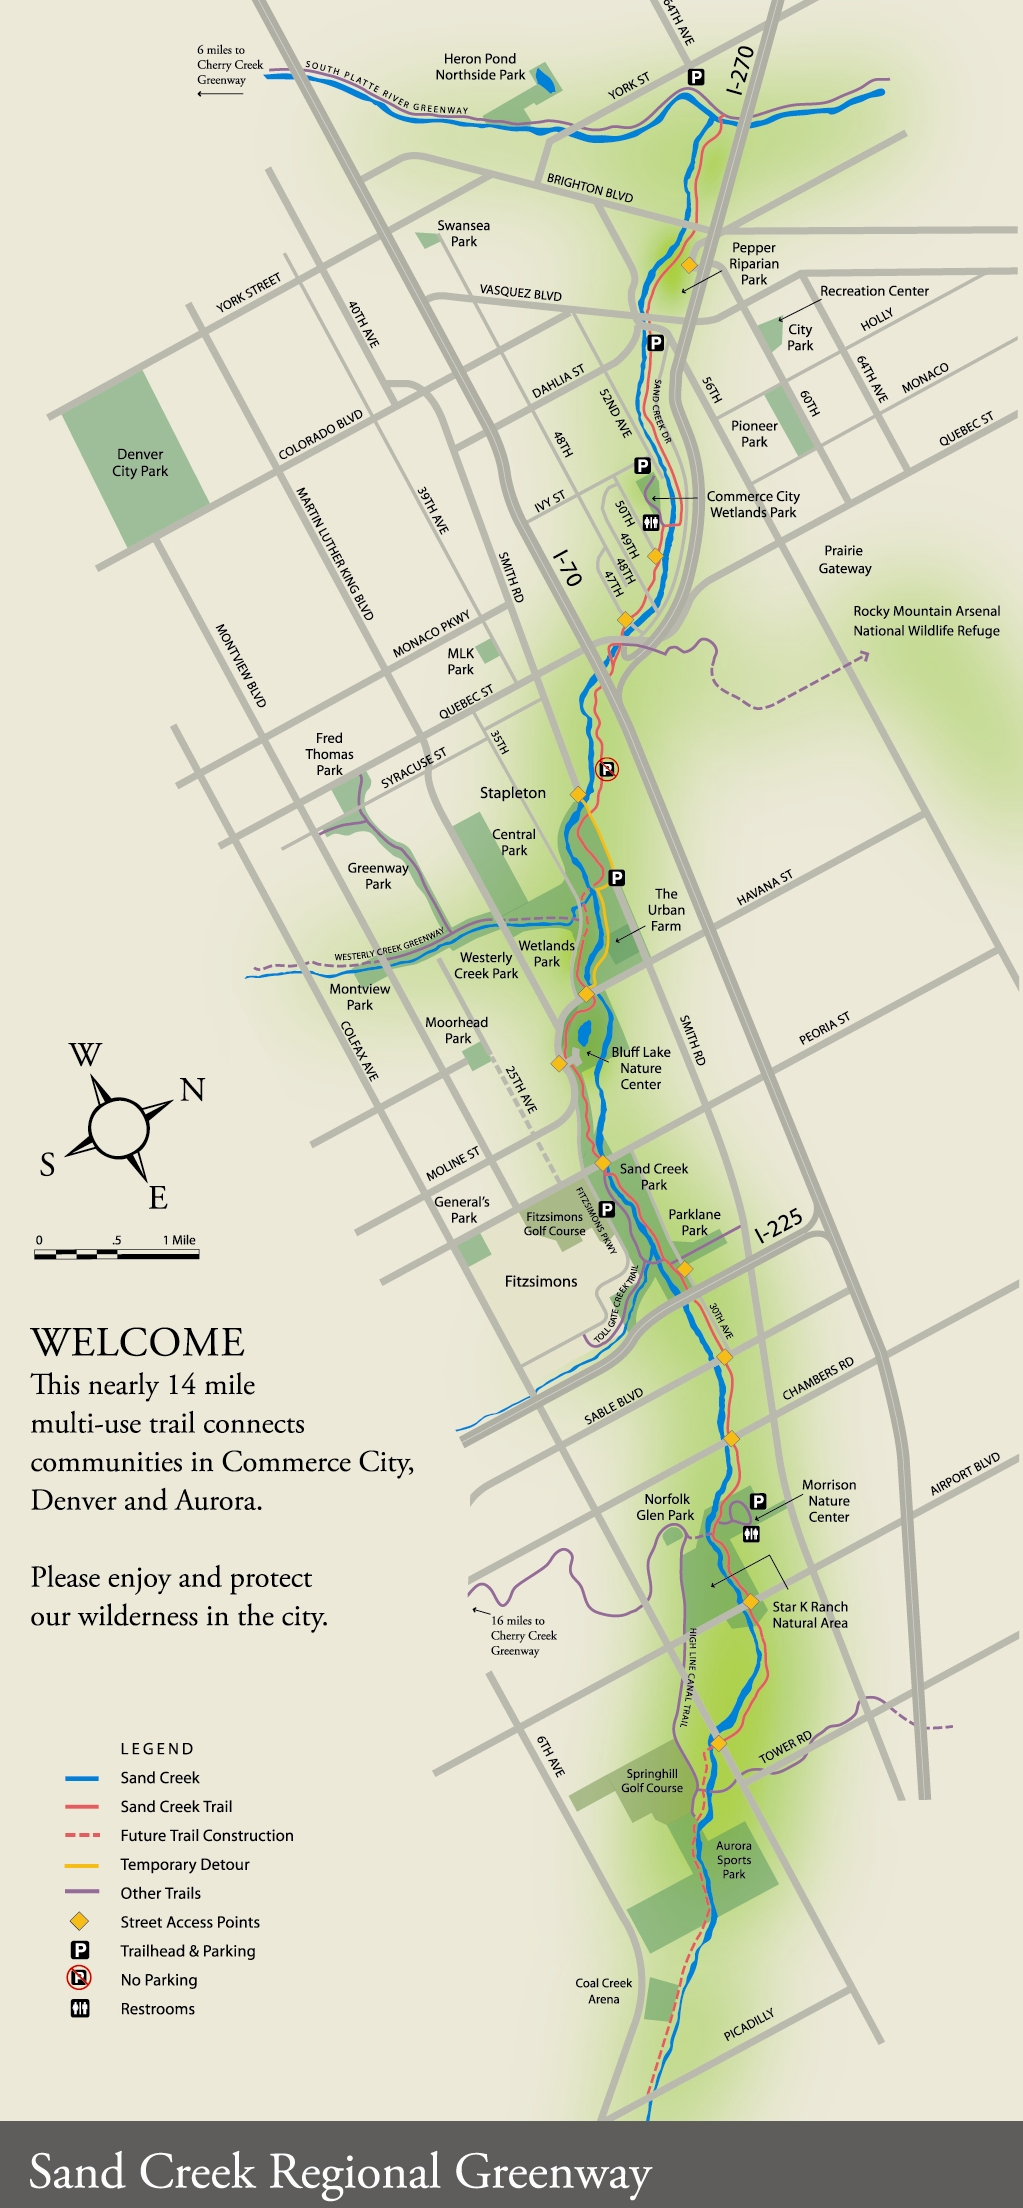 Sand Creek Regional Greenway Map Denver City Park Denver Co Usa